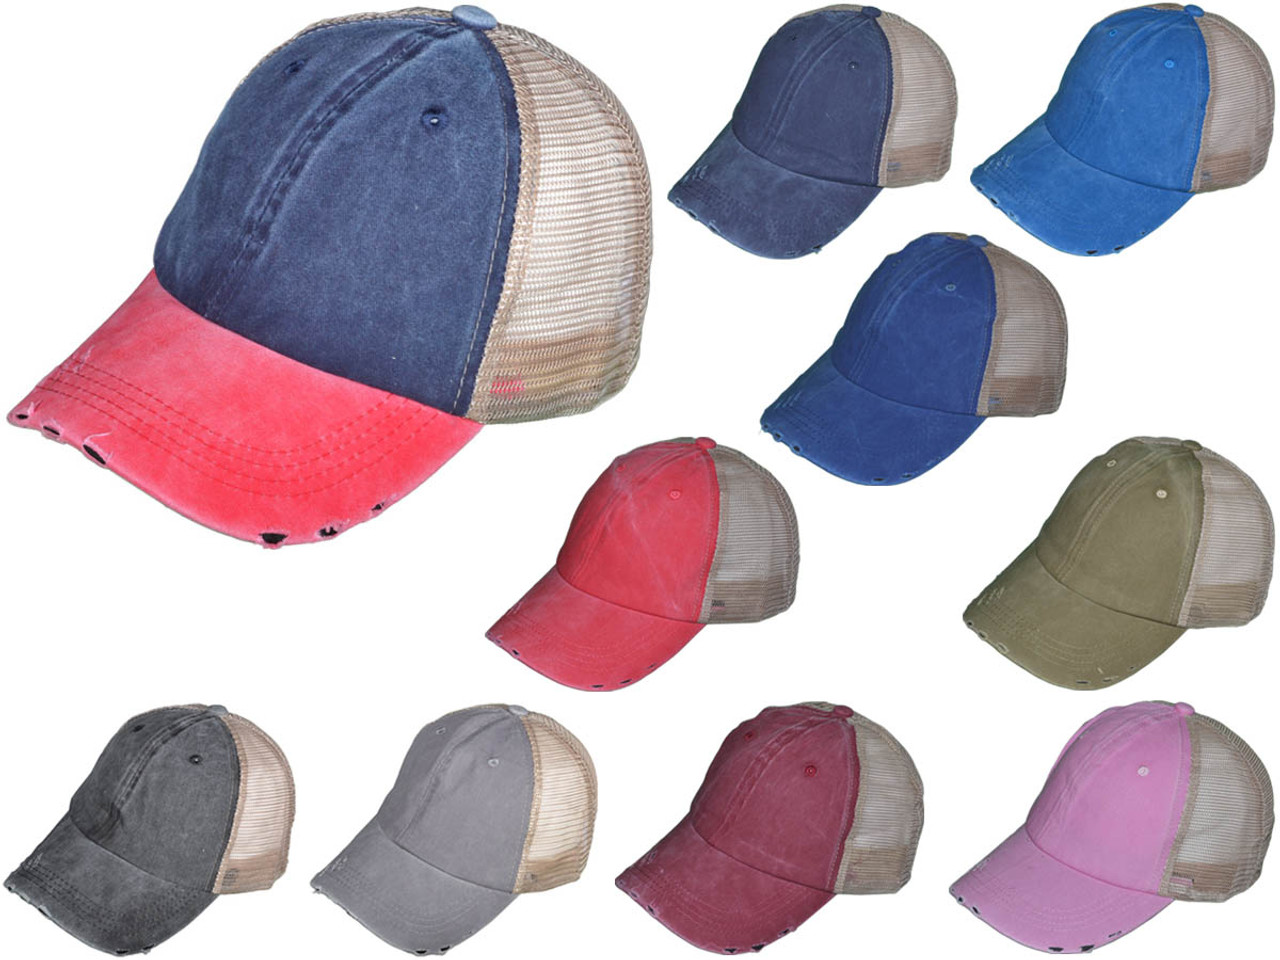 1c1503f8a47 Wholesale Distressed Mesh Trucker Hats - BK Caps Low Profile Unstructured  Pigment-Dyed Cotton (Navy Red Khaki)